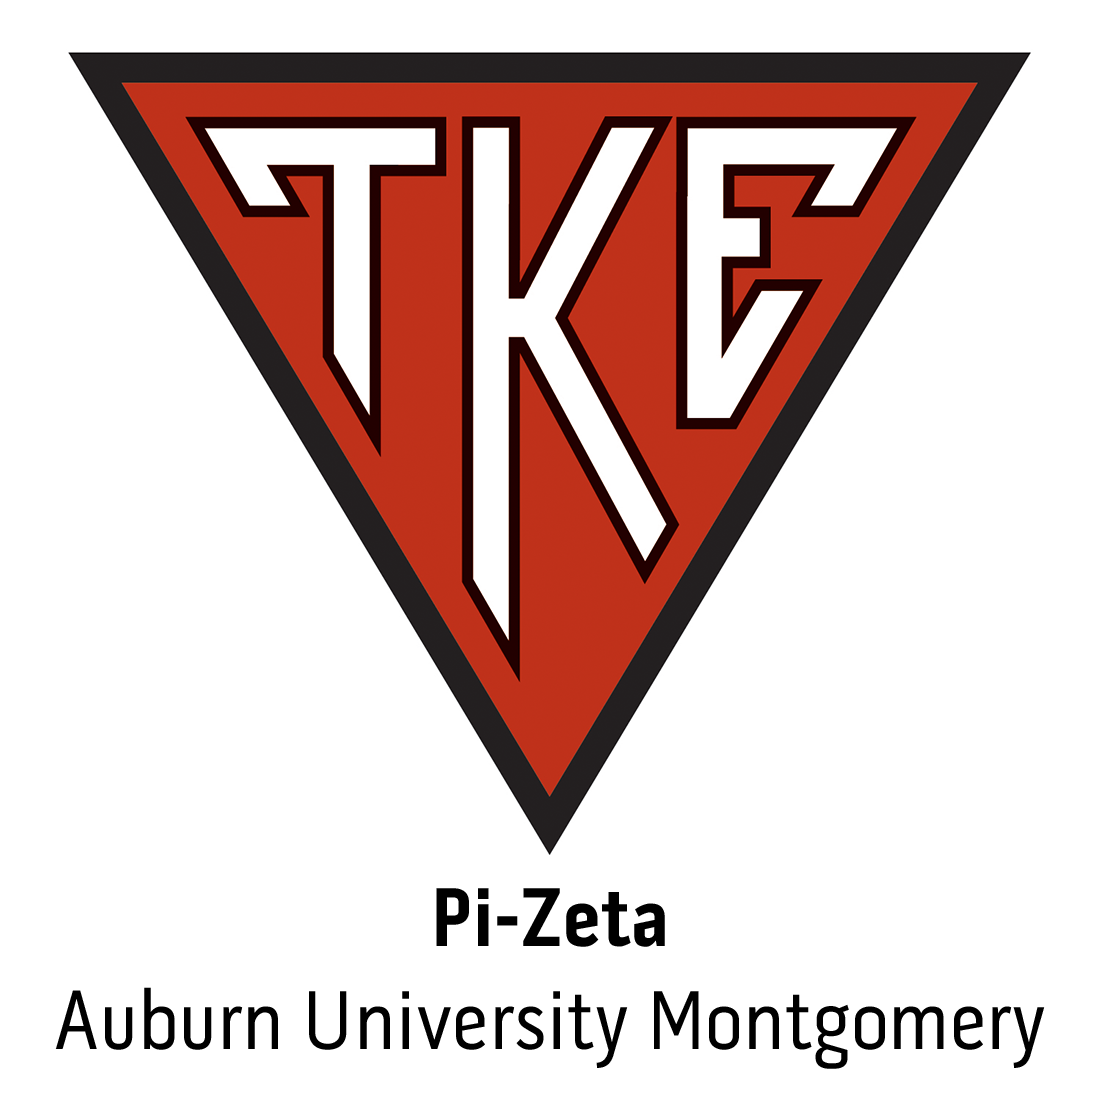 Pi-Zeta Chapter at Auburn University Montgomery